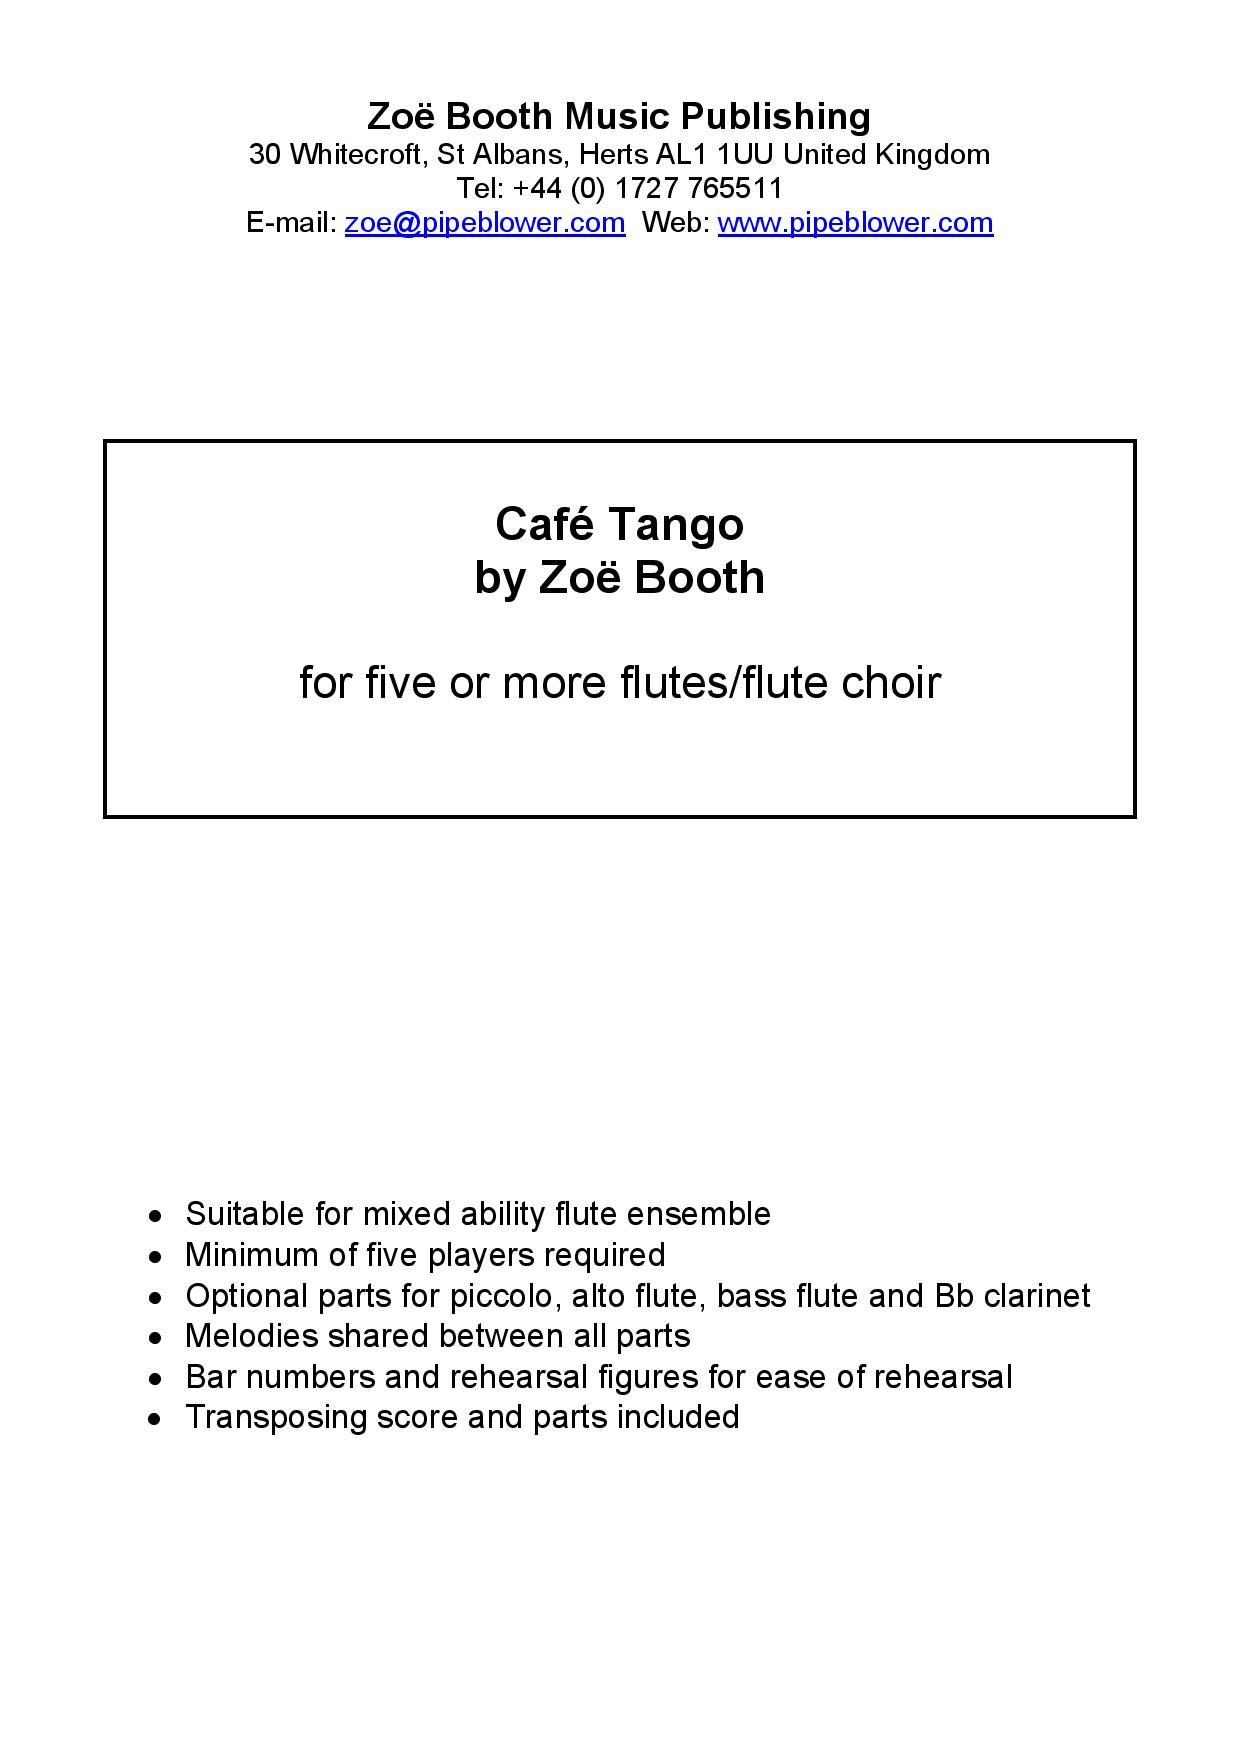 Café Tango  by Zoë Booth for five or more flutes/flute choir